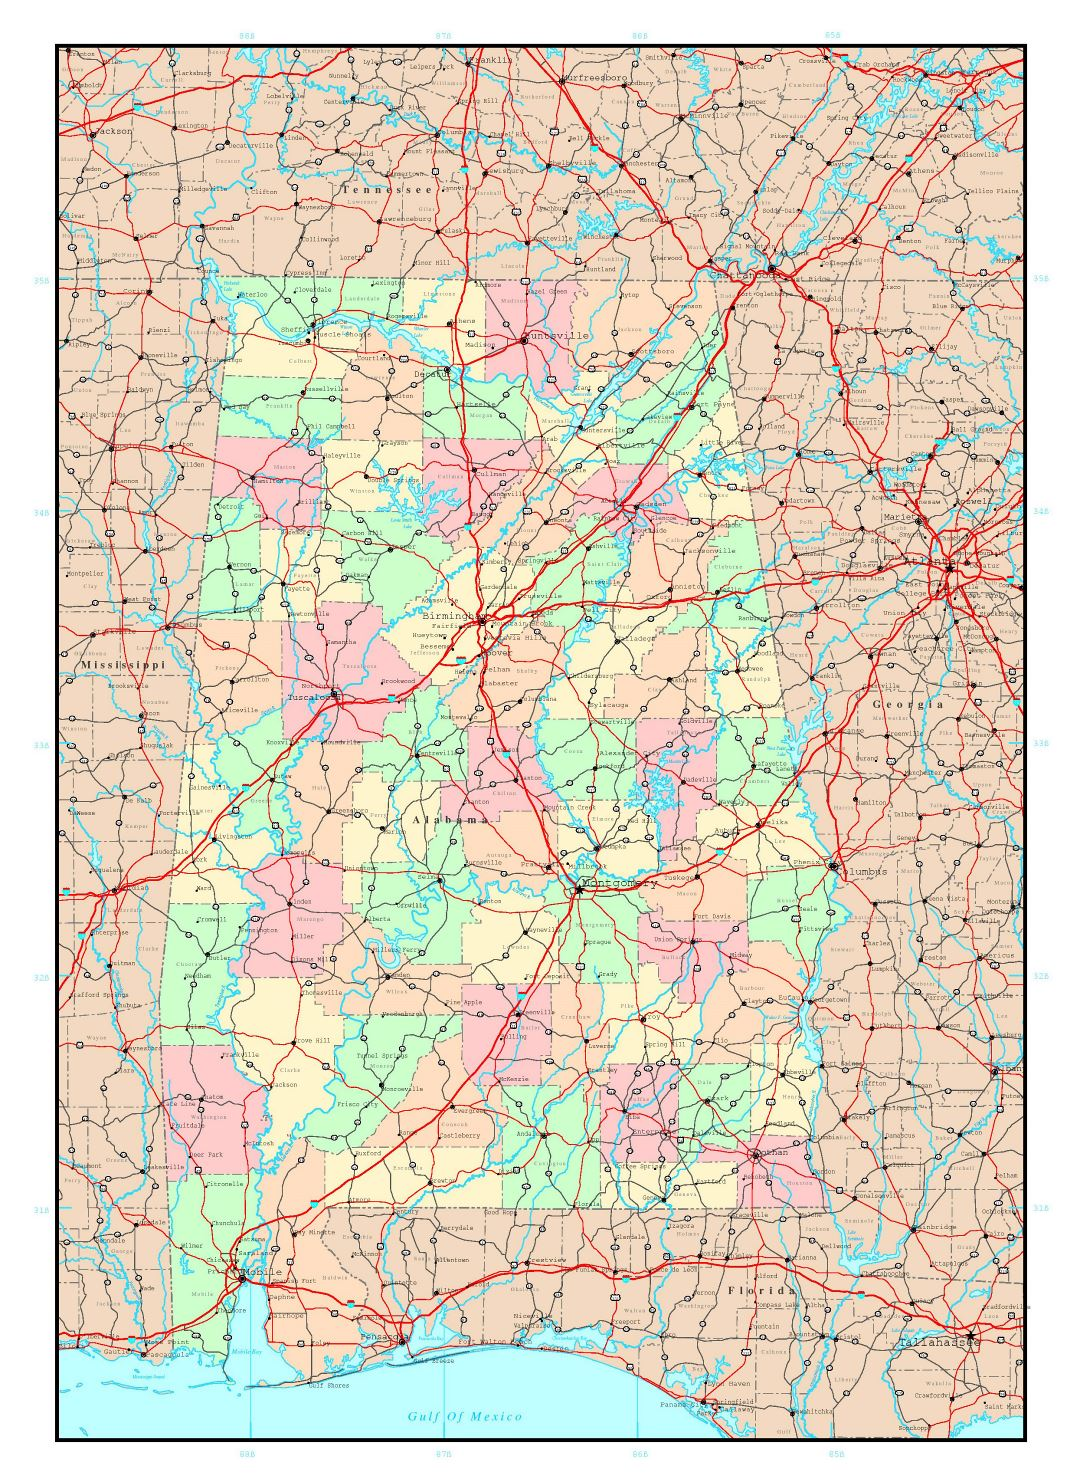 Large detailed administrative map of Alabama state with roads, highways and major cities